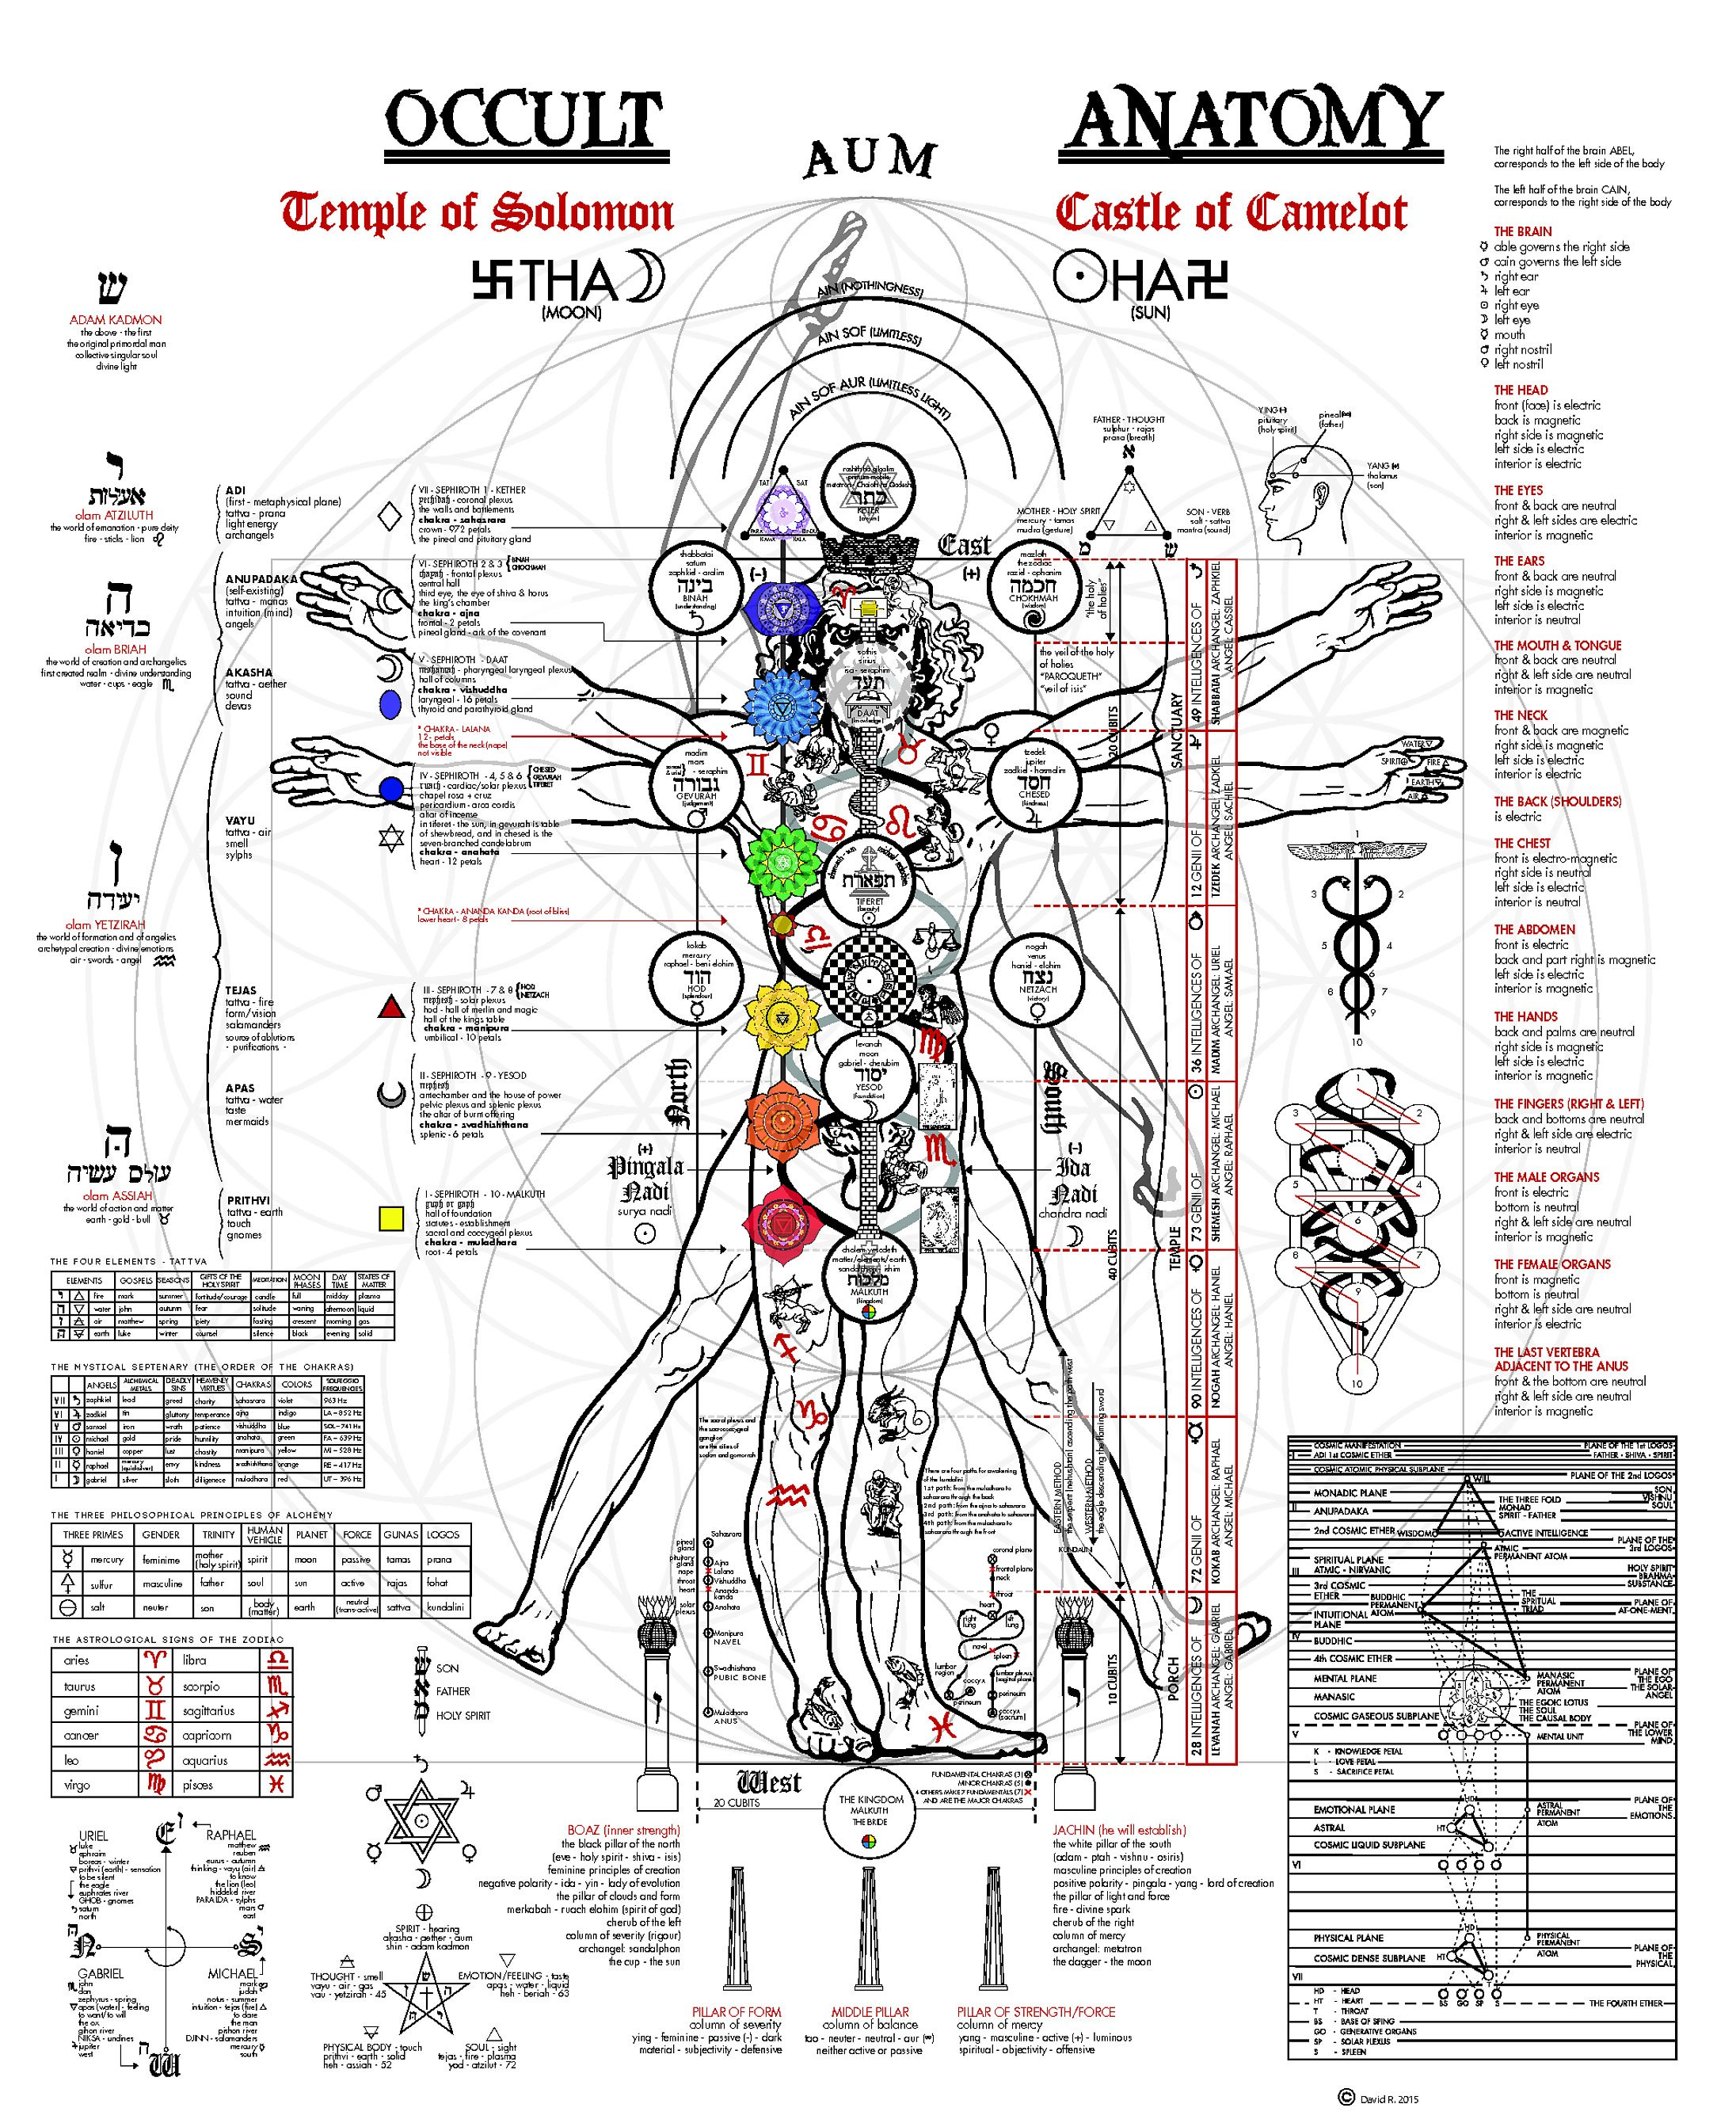 A Fascinating Illustration Of The Occult Anatomy Man